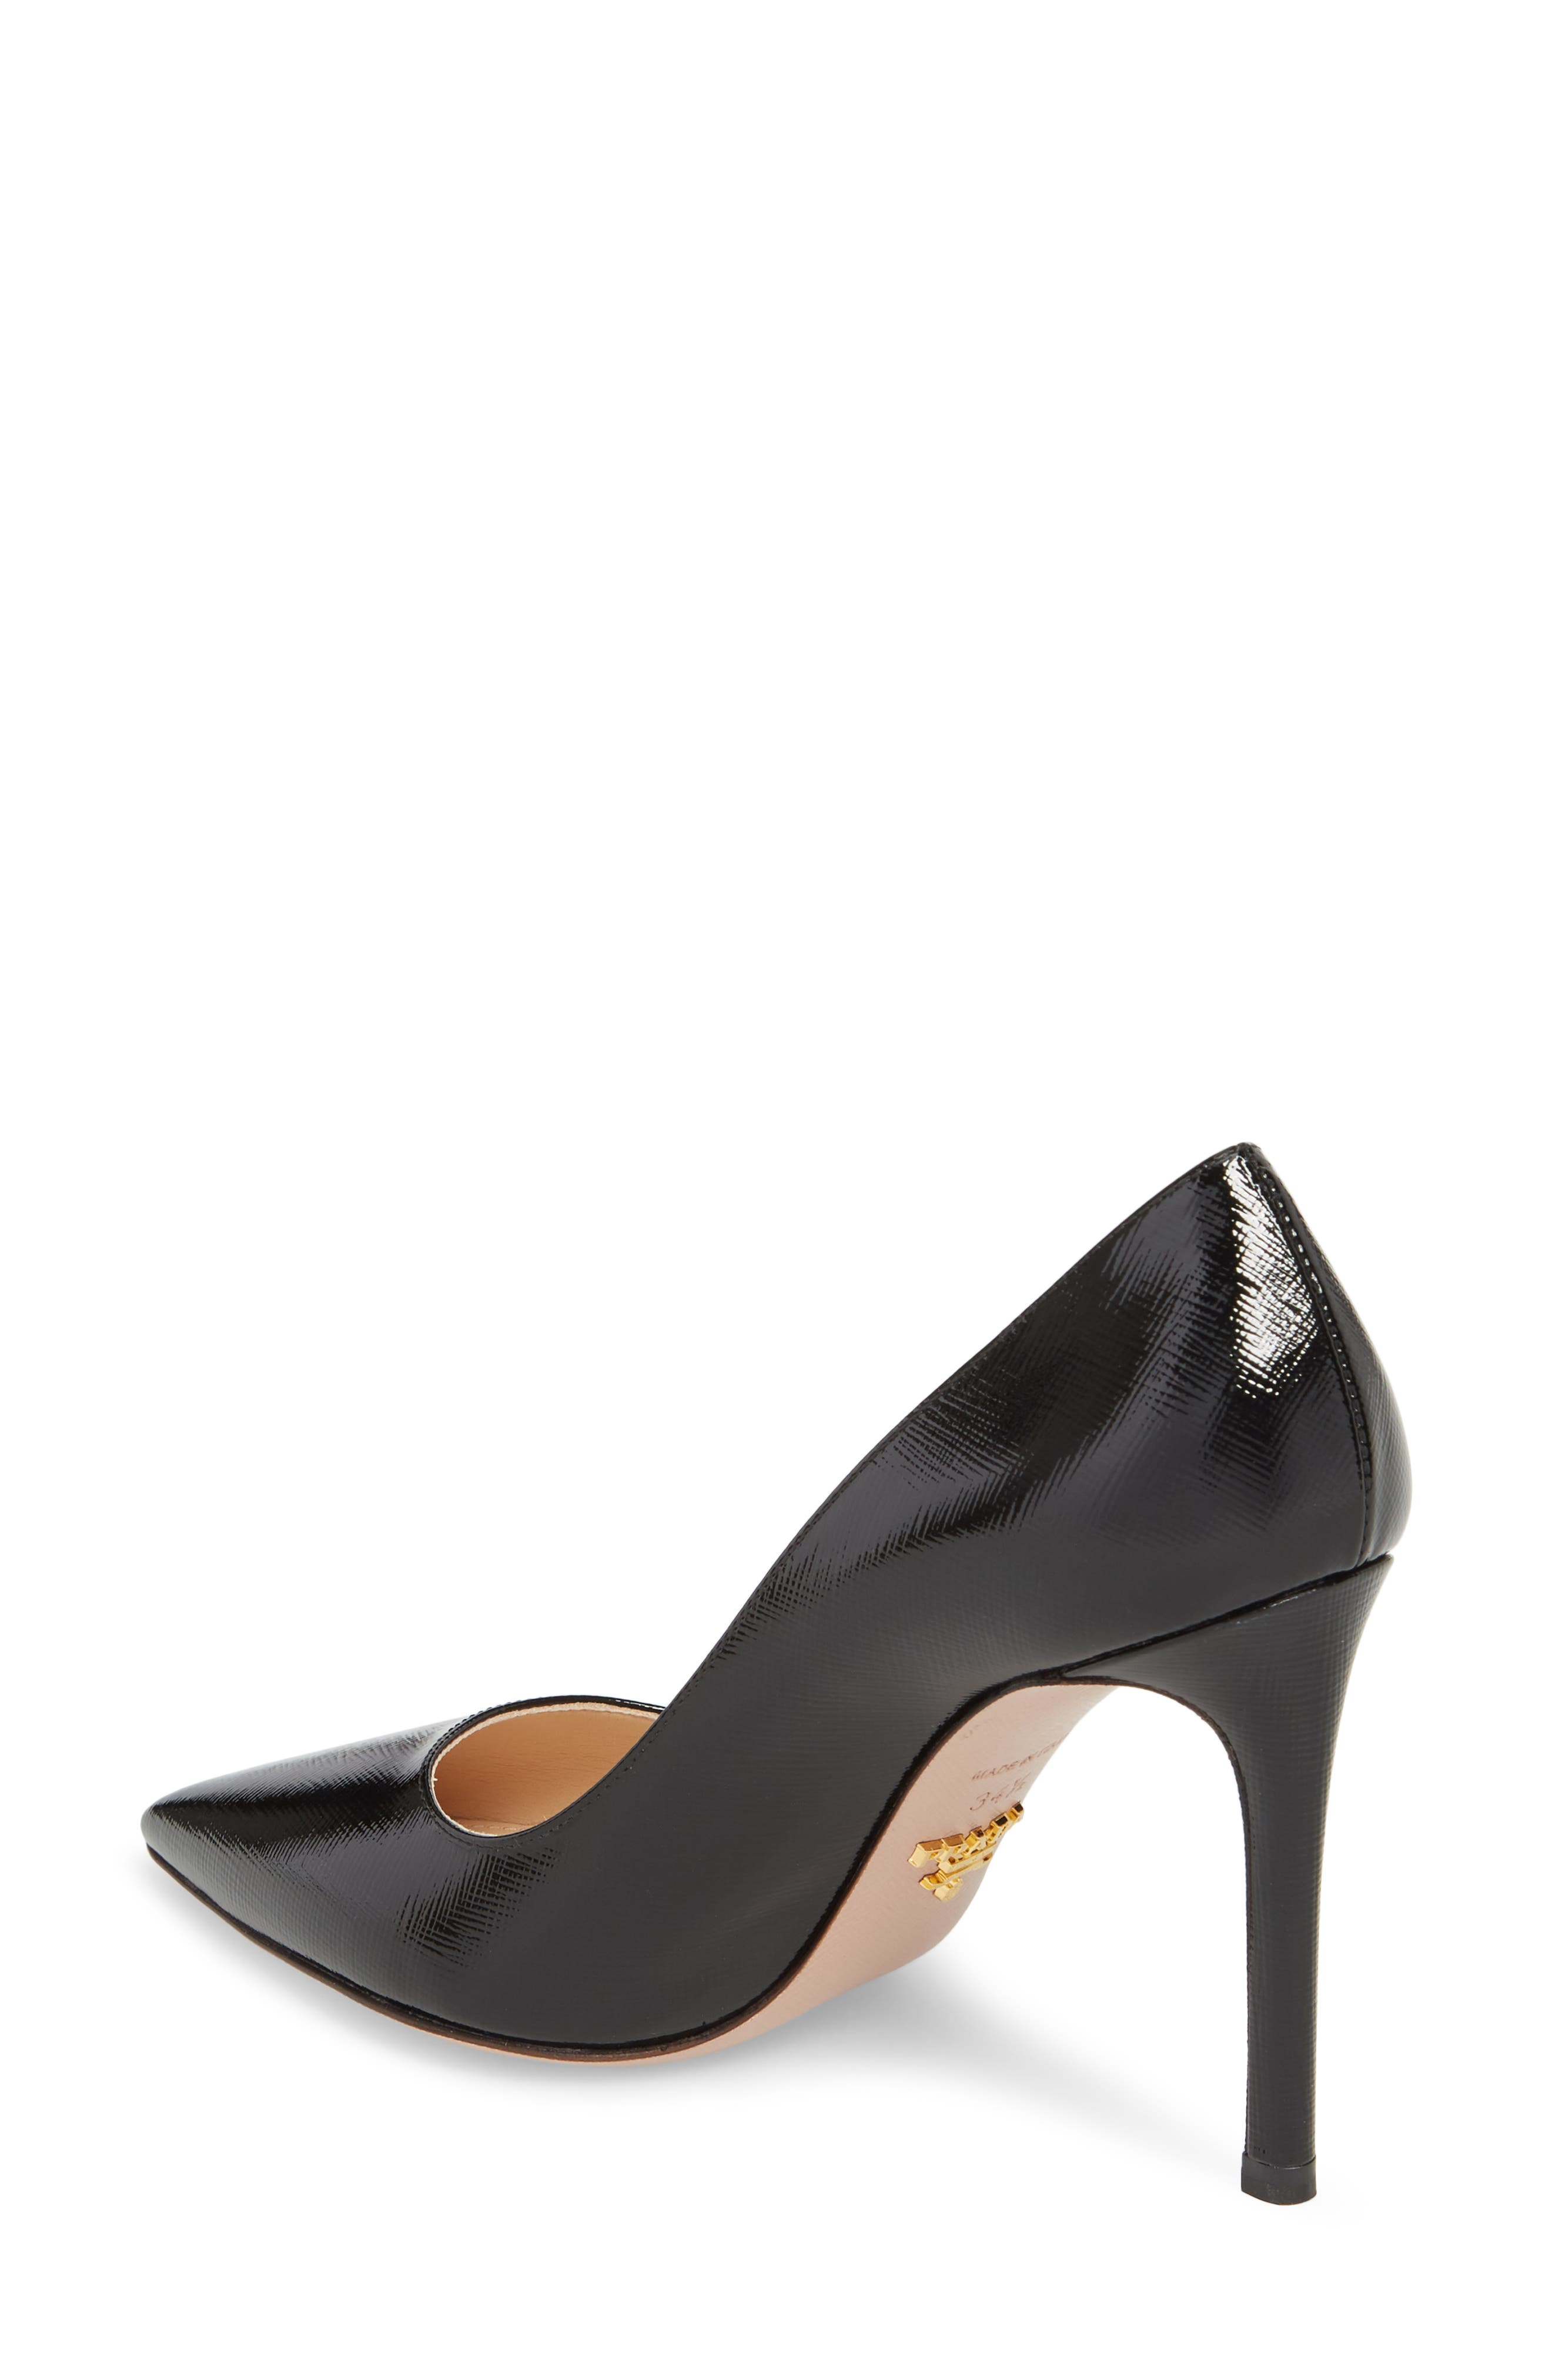 PRADA, Pointy Toe Pump, Alternate thumbnail 2, color, BLACK